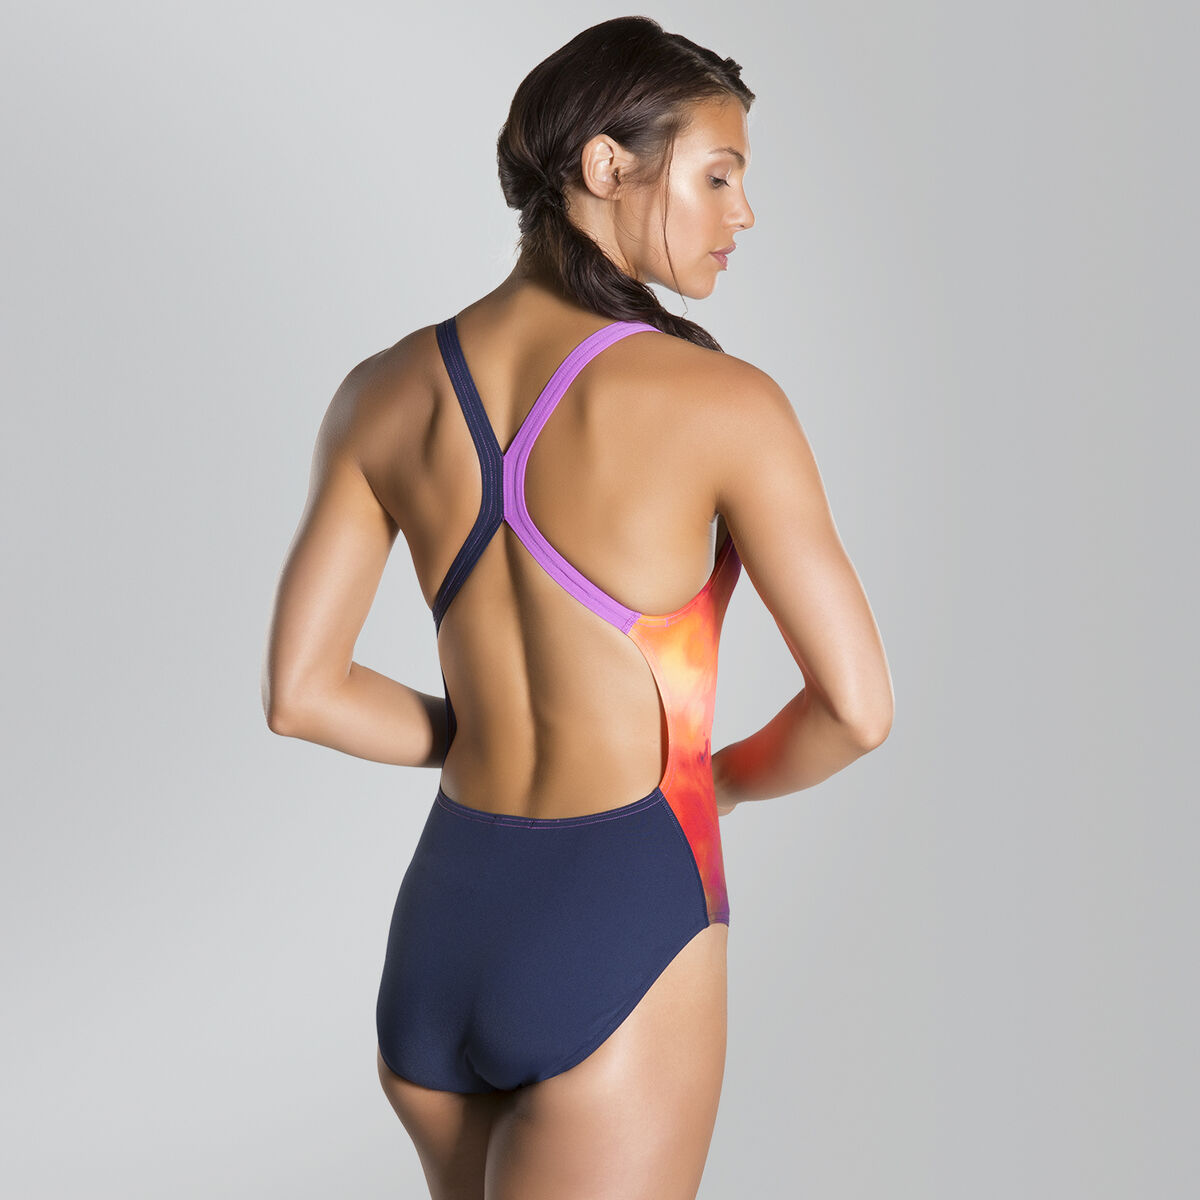 Solarvision Placement Digital Powerback Swimsuit